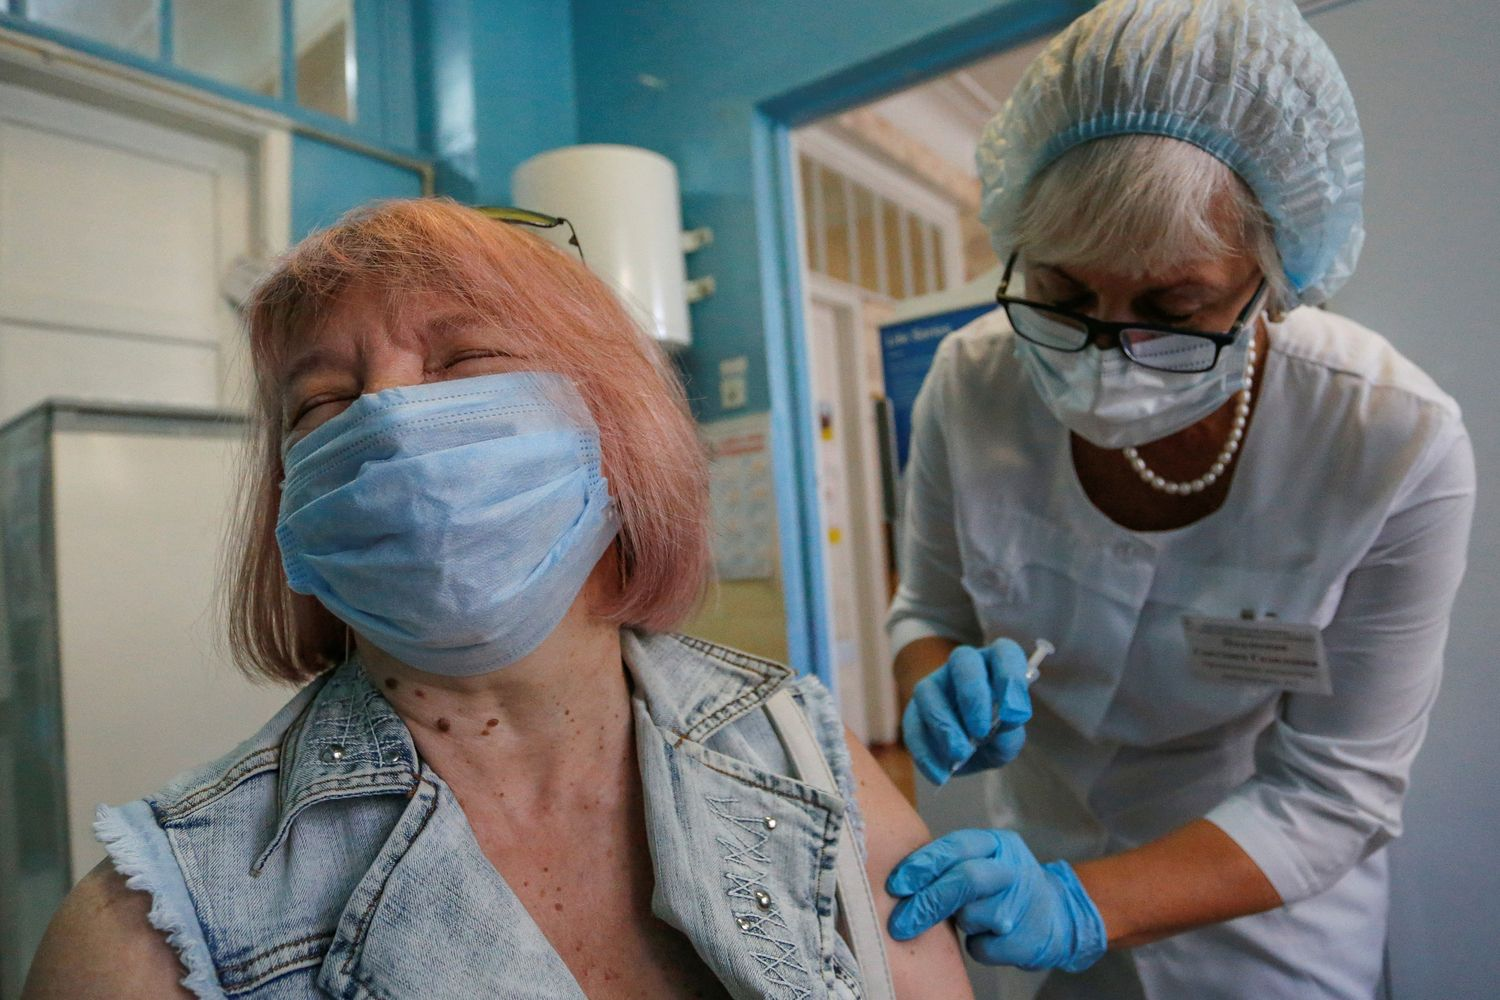 A woman is injected with Sputnik Light vaccine against the coronavirus disease at a local hospital in the rebel-controlled city of Donetsk, Ukraine, on Aug 2 this year. (Reuters photo)